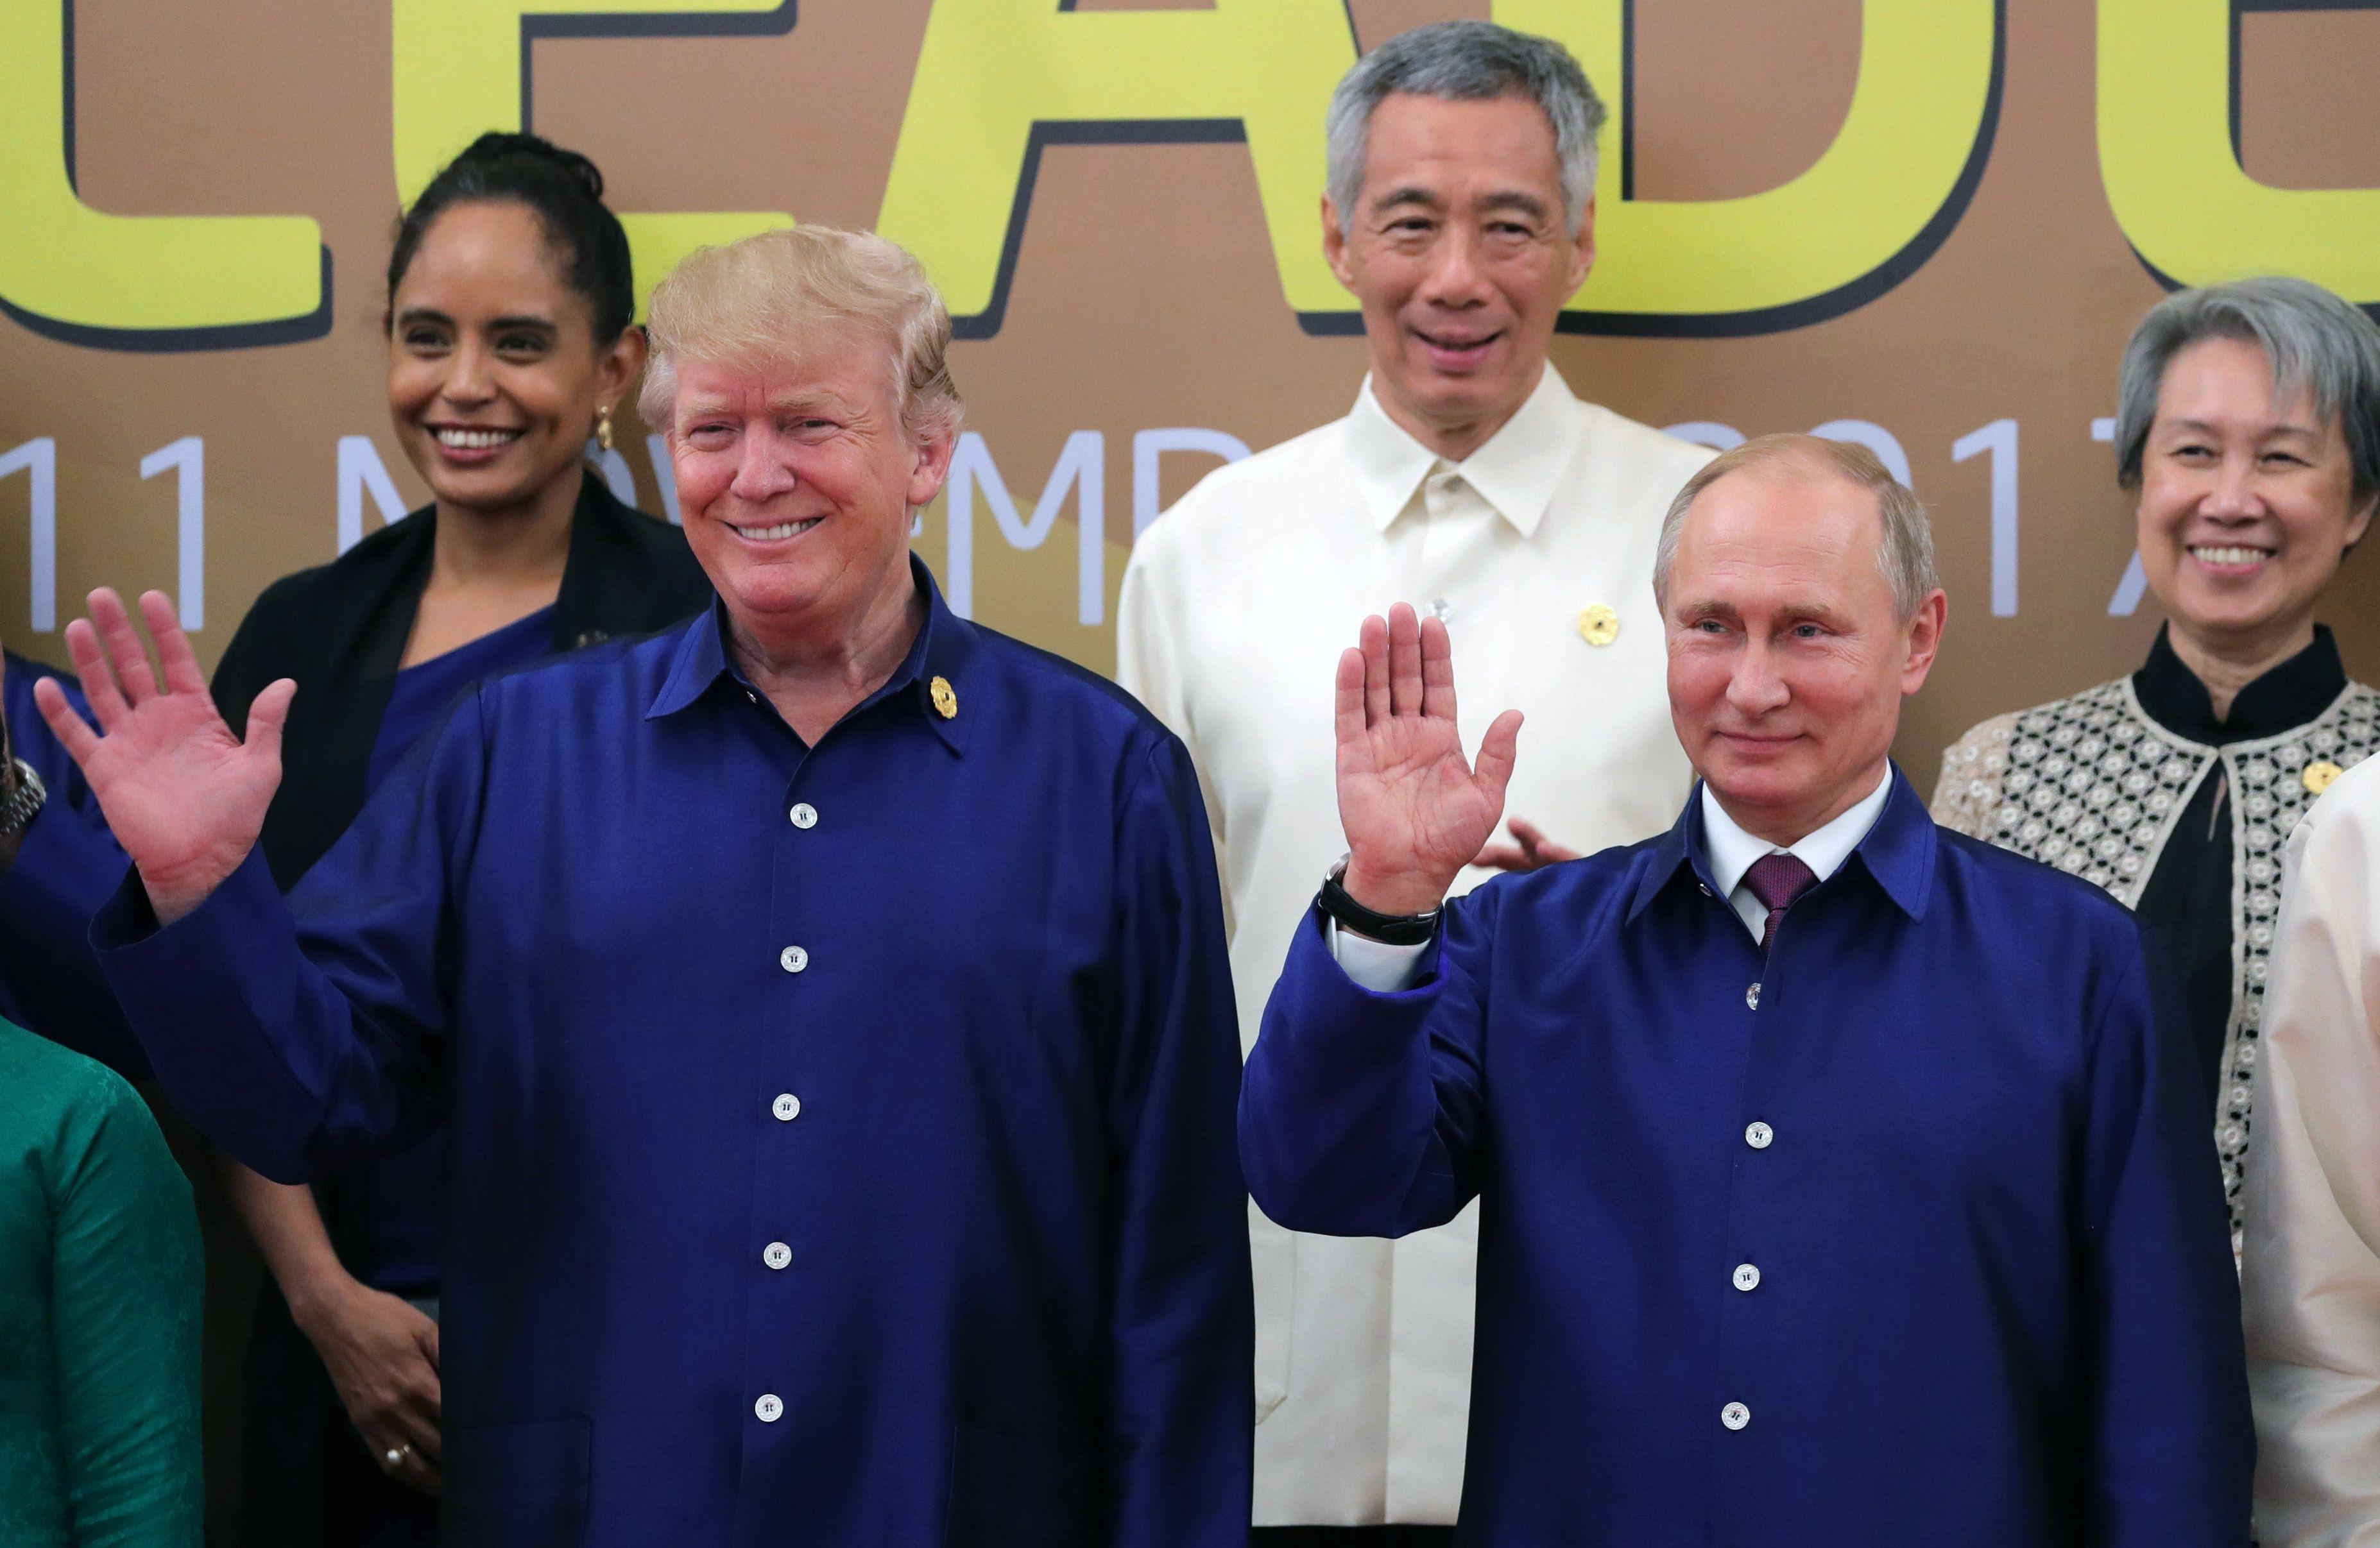 US President Donald Trump (L) and Russia's President Vladimir Putin (R) wave as they pose for a group photo ahead of the Asia-Pacific Economic Cooperation (APEC) Summit leaders gala dinner in the central Vietnamese city of Danang on November 10, 2017. / AFP PHOTO / SPUTNIK / Mikhail KLIMENTYEV        (Photo credit should read MIKHAIL KLIMENTYEV/AFP/Getty Images)